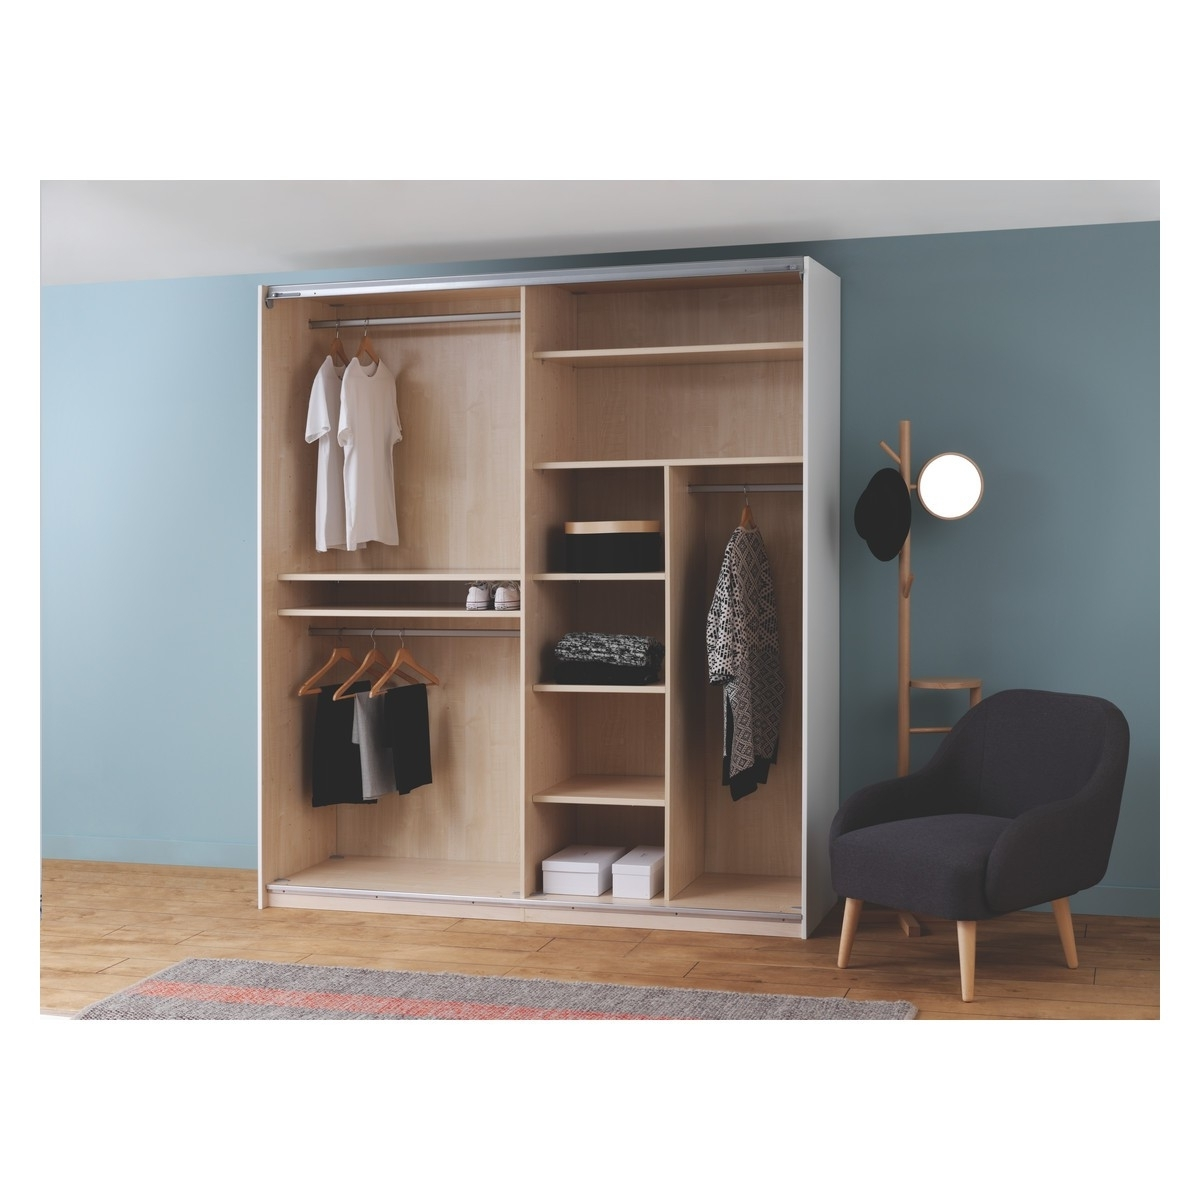 Widely Used Double Rail Wardrobes Intended For Kripton Single Hanging Rail W97cm For Kripton Wardrobe (View 10 of 15)